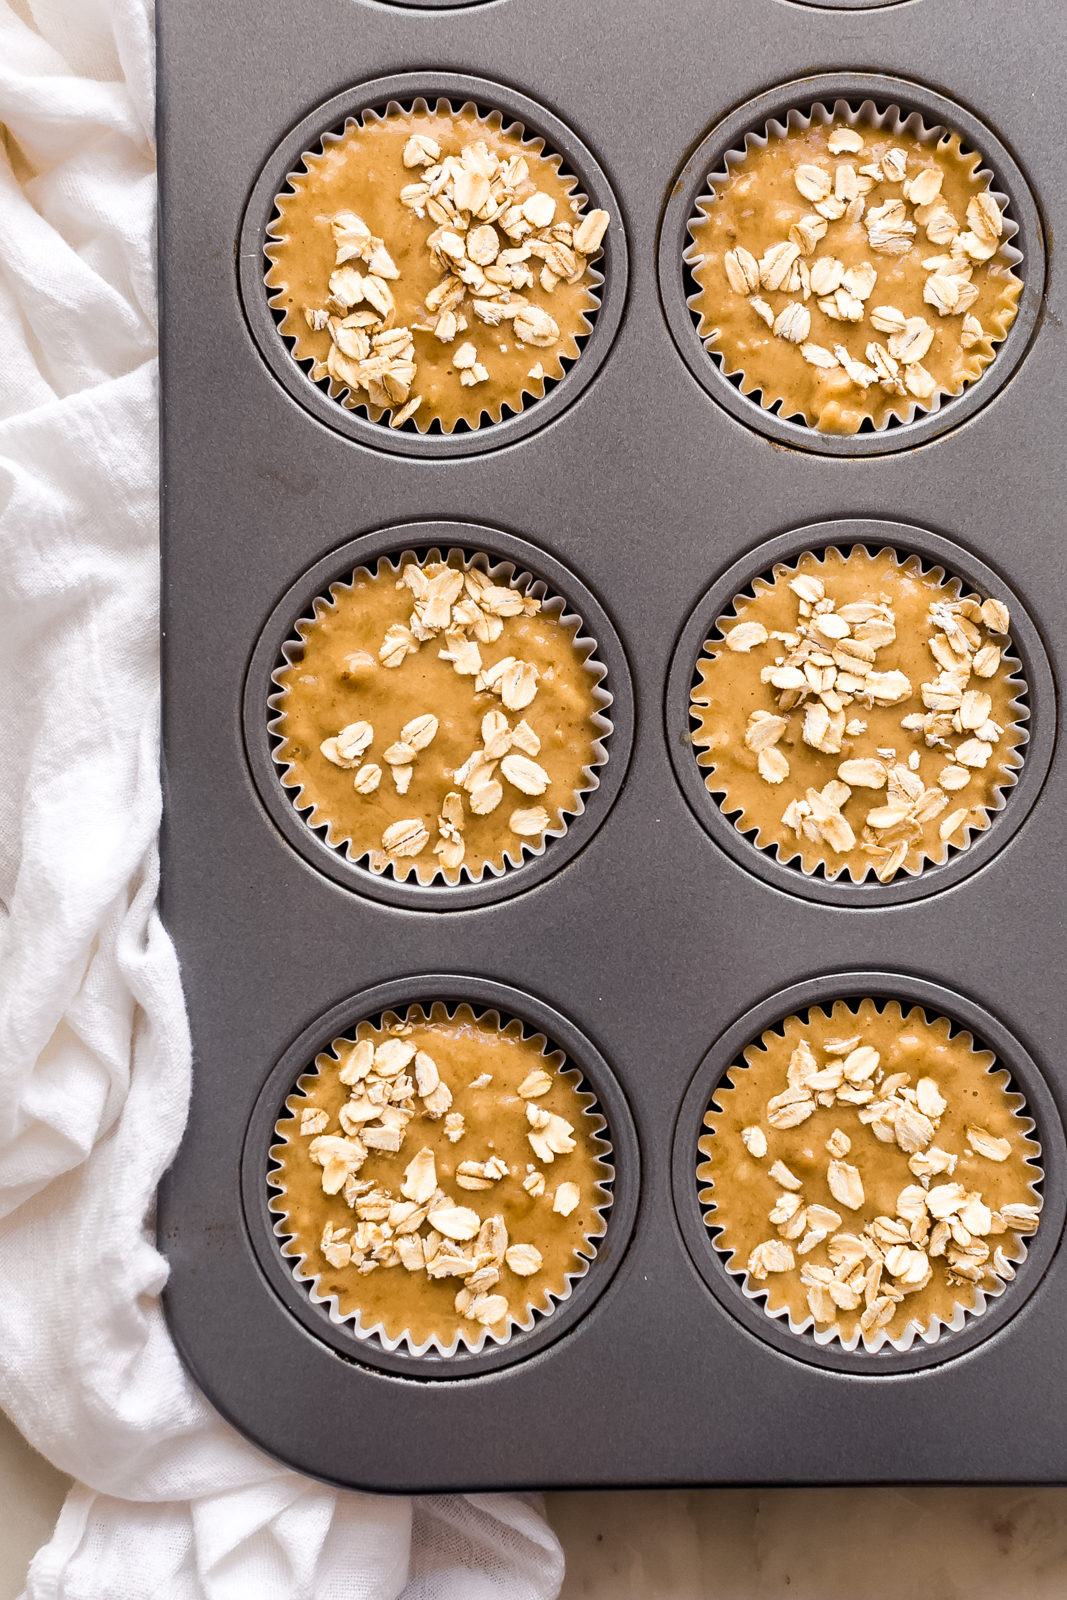 muffin pan lined with liners and filled with banana nut muffin batter topped with oats